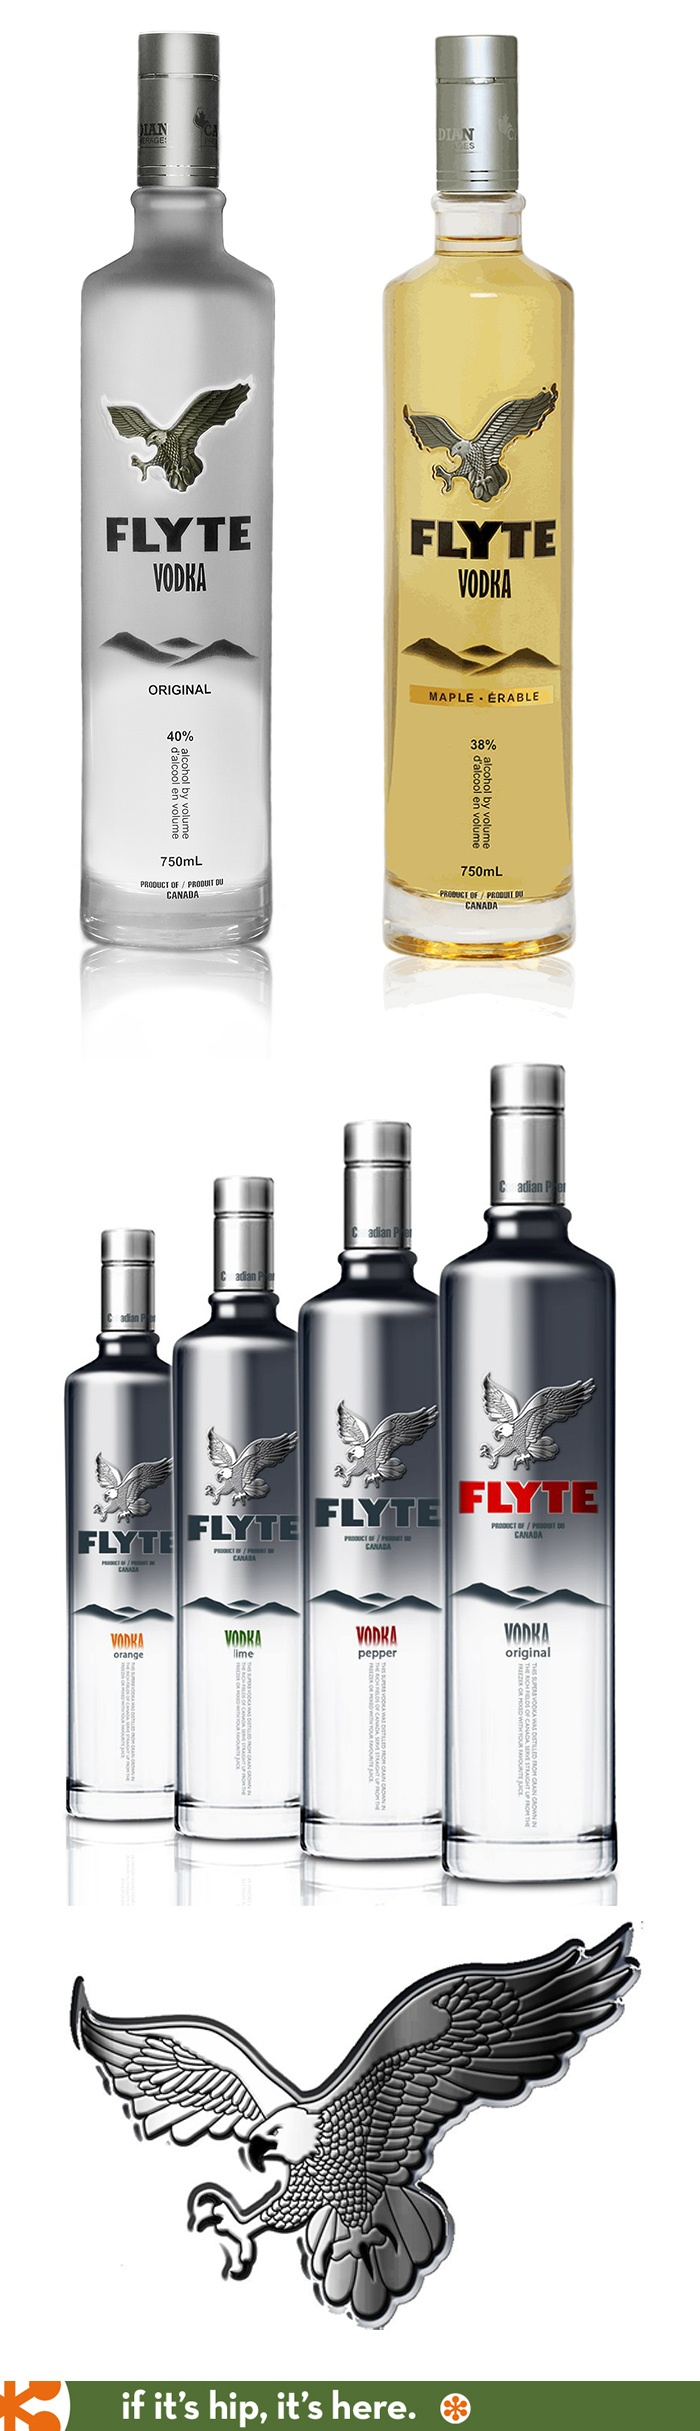 Flyte Premium Vodkas from Canada